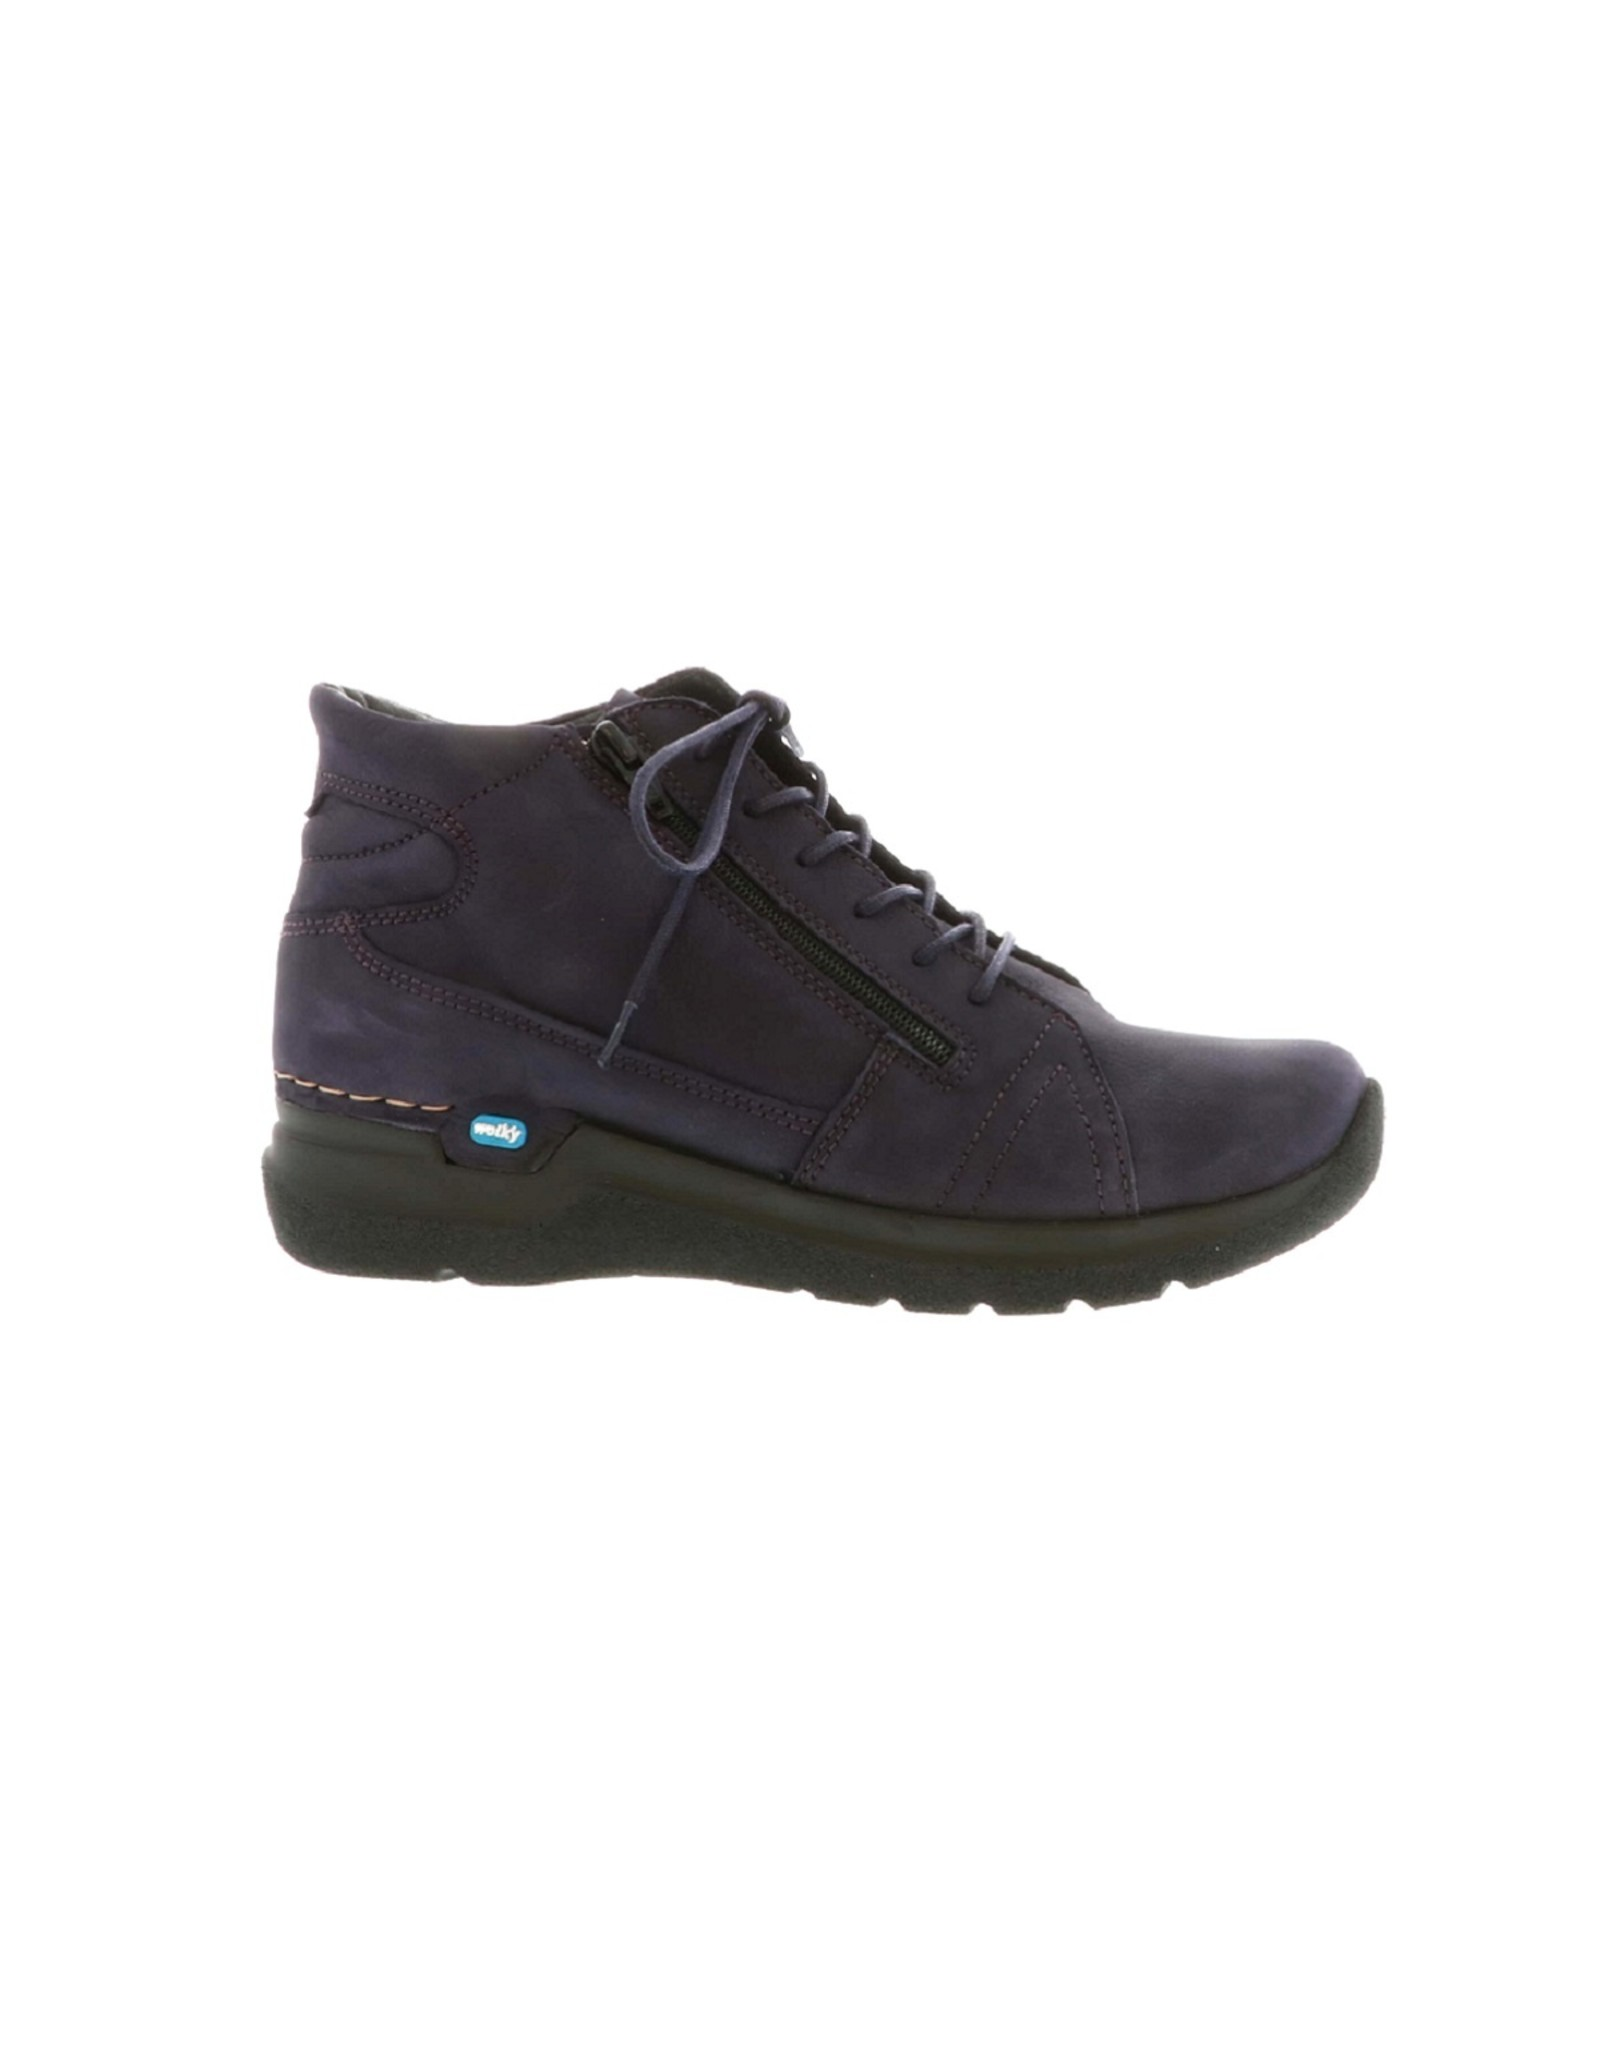 WOLKY WHY-PURPLE ANTIQUE NUBUCK